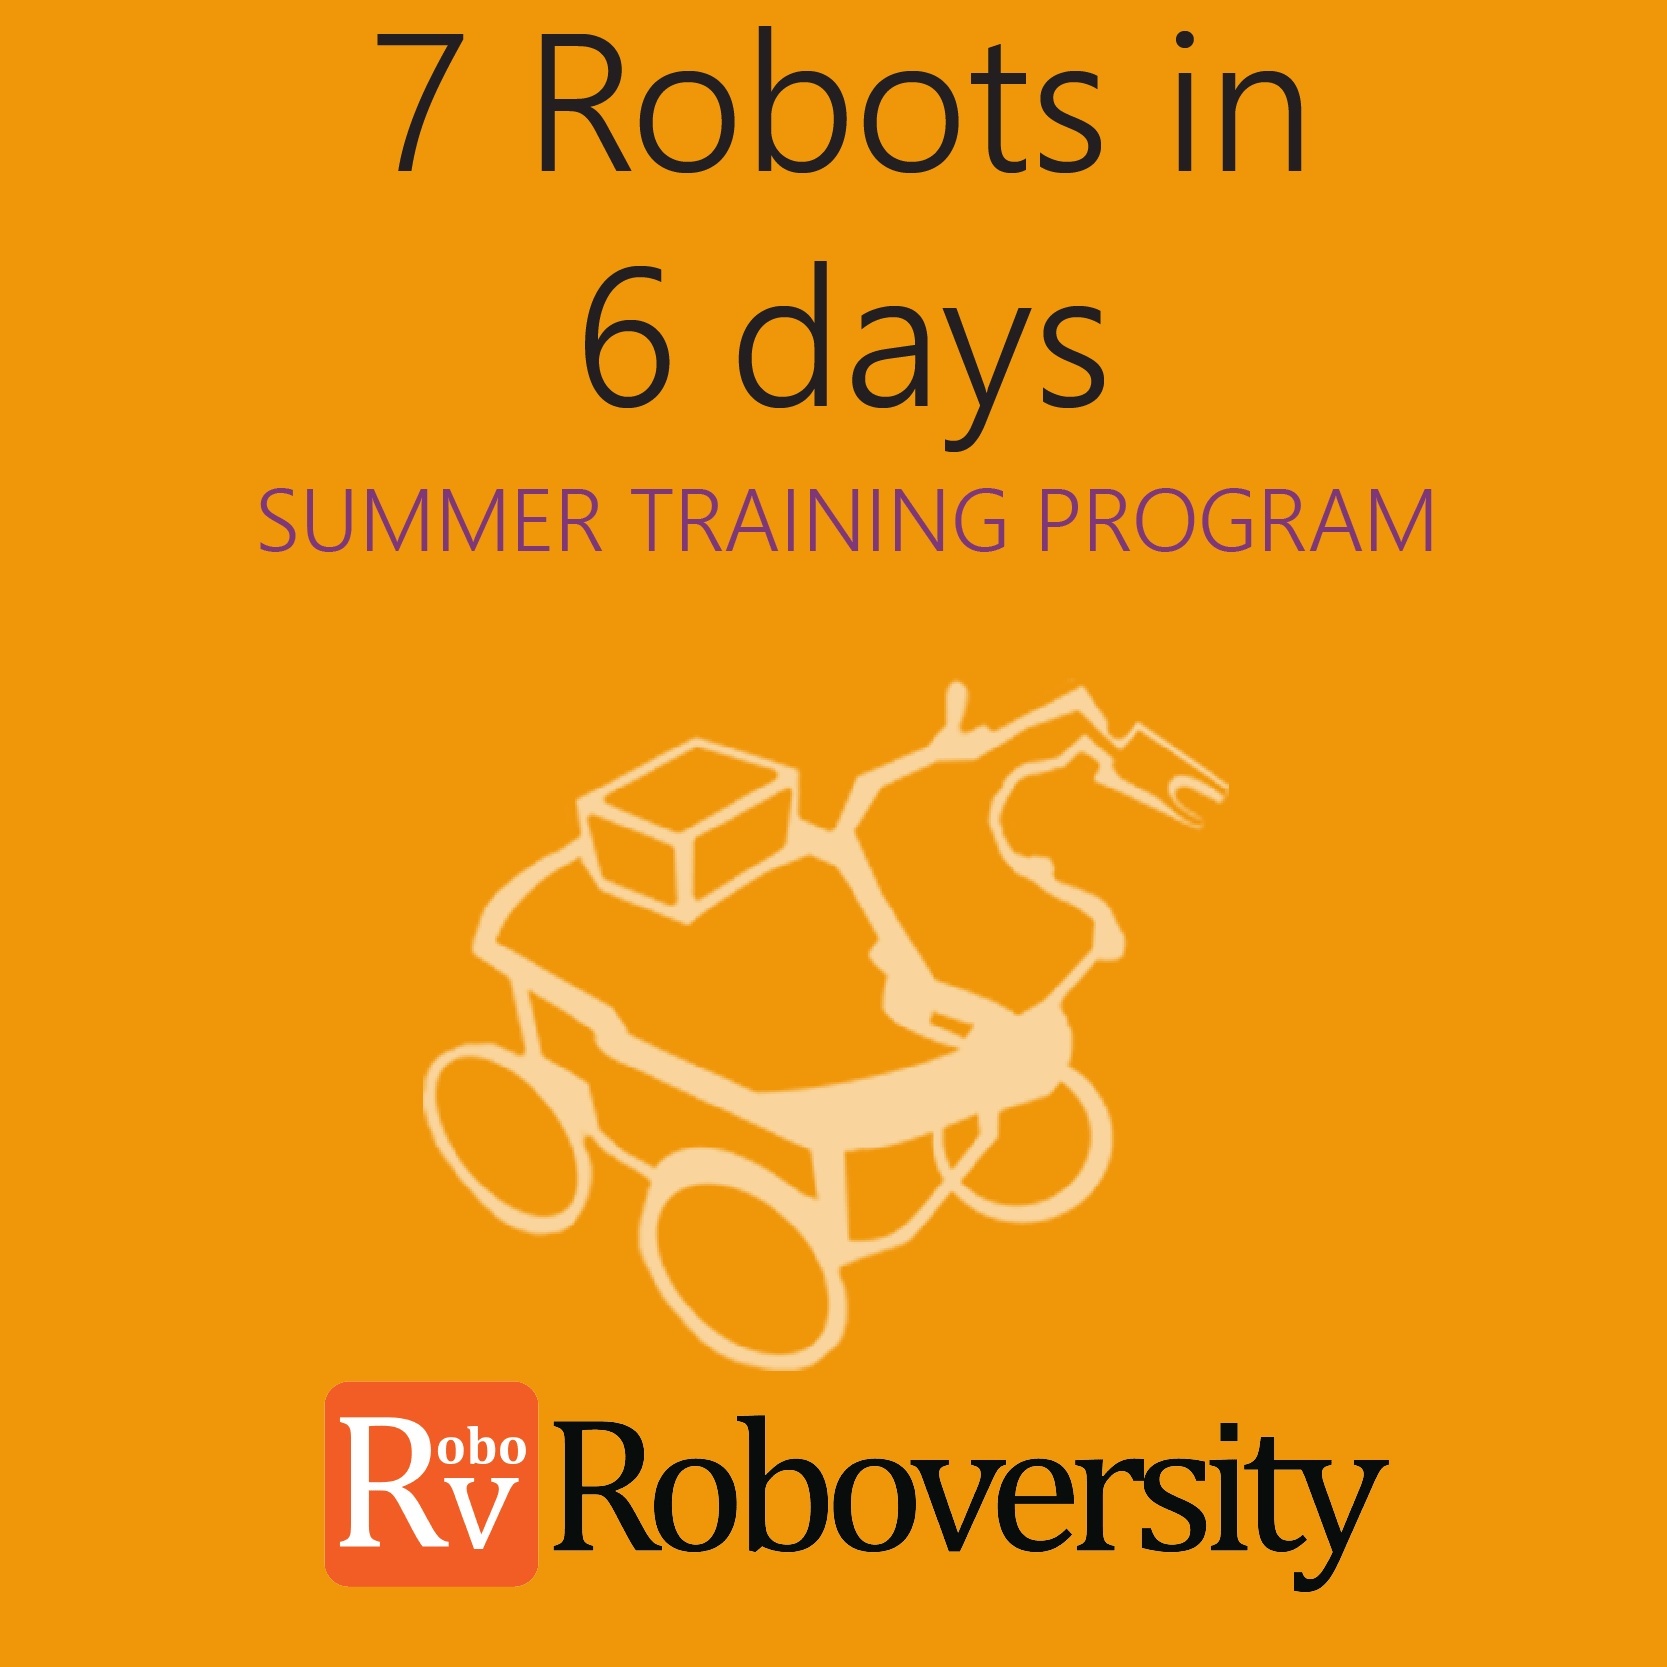 Summer Training Program on 7 Robots in 6 Days  at Skyfi Labs Center, Domlur, Bangalore